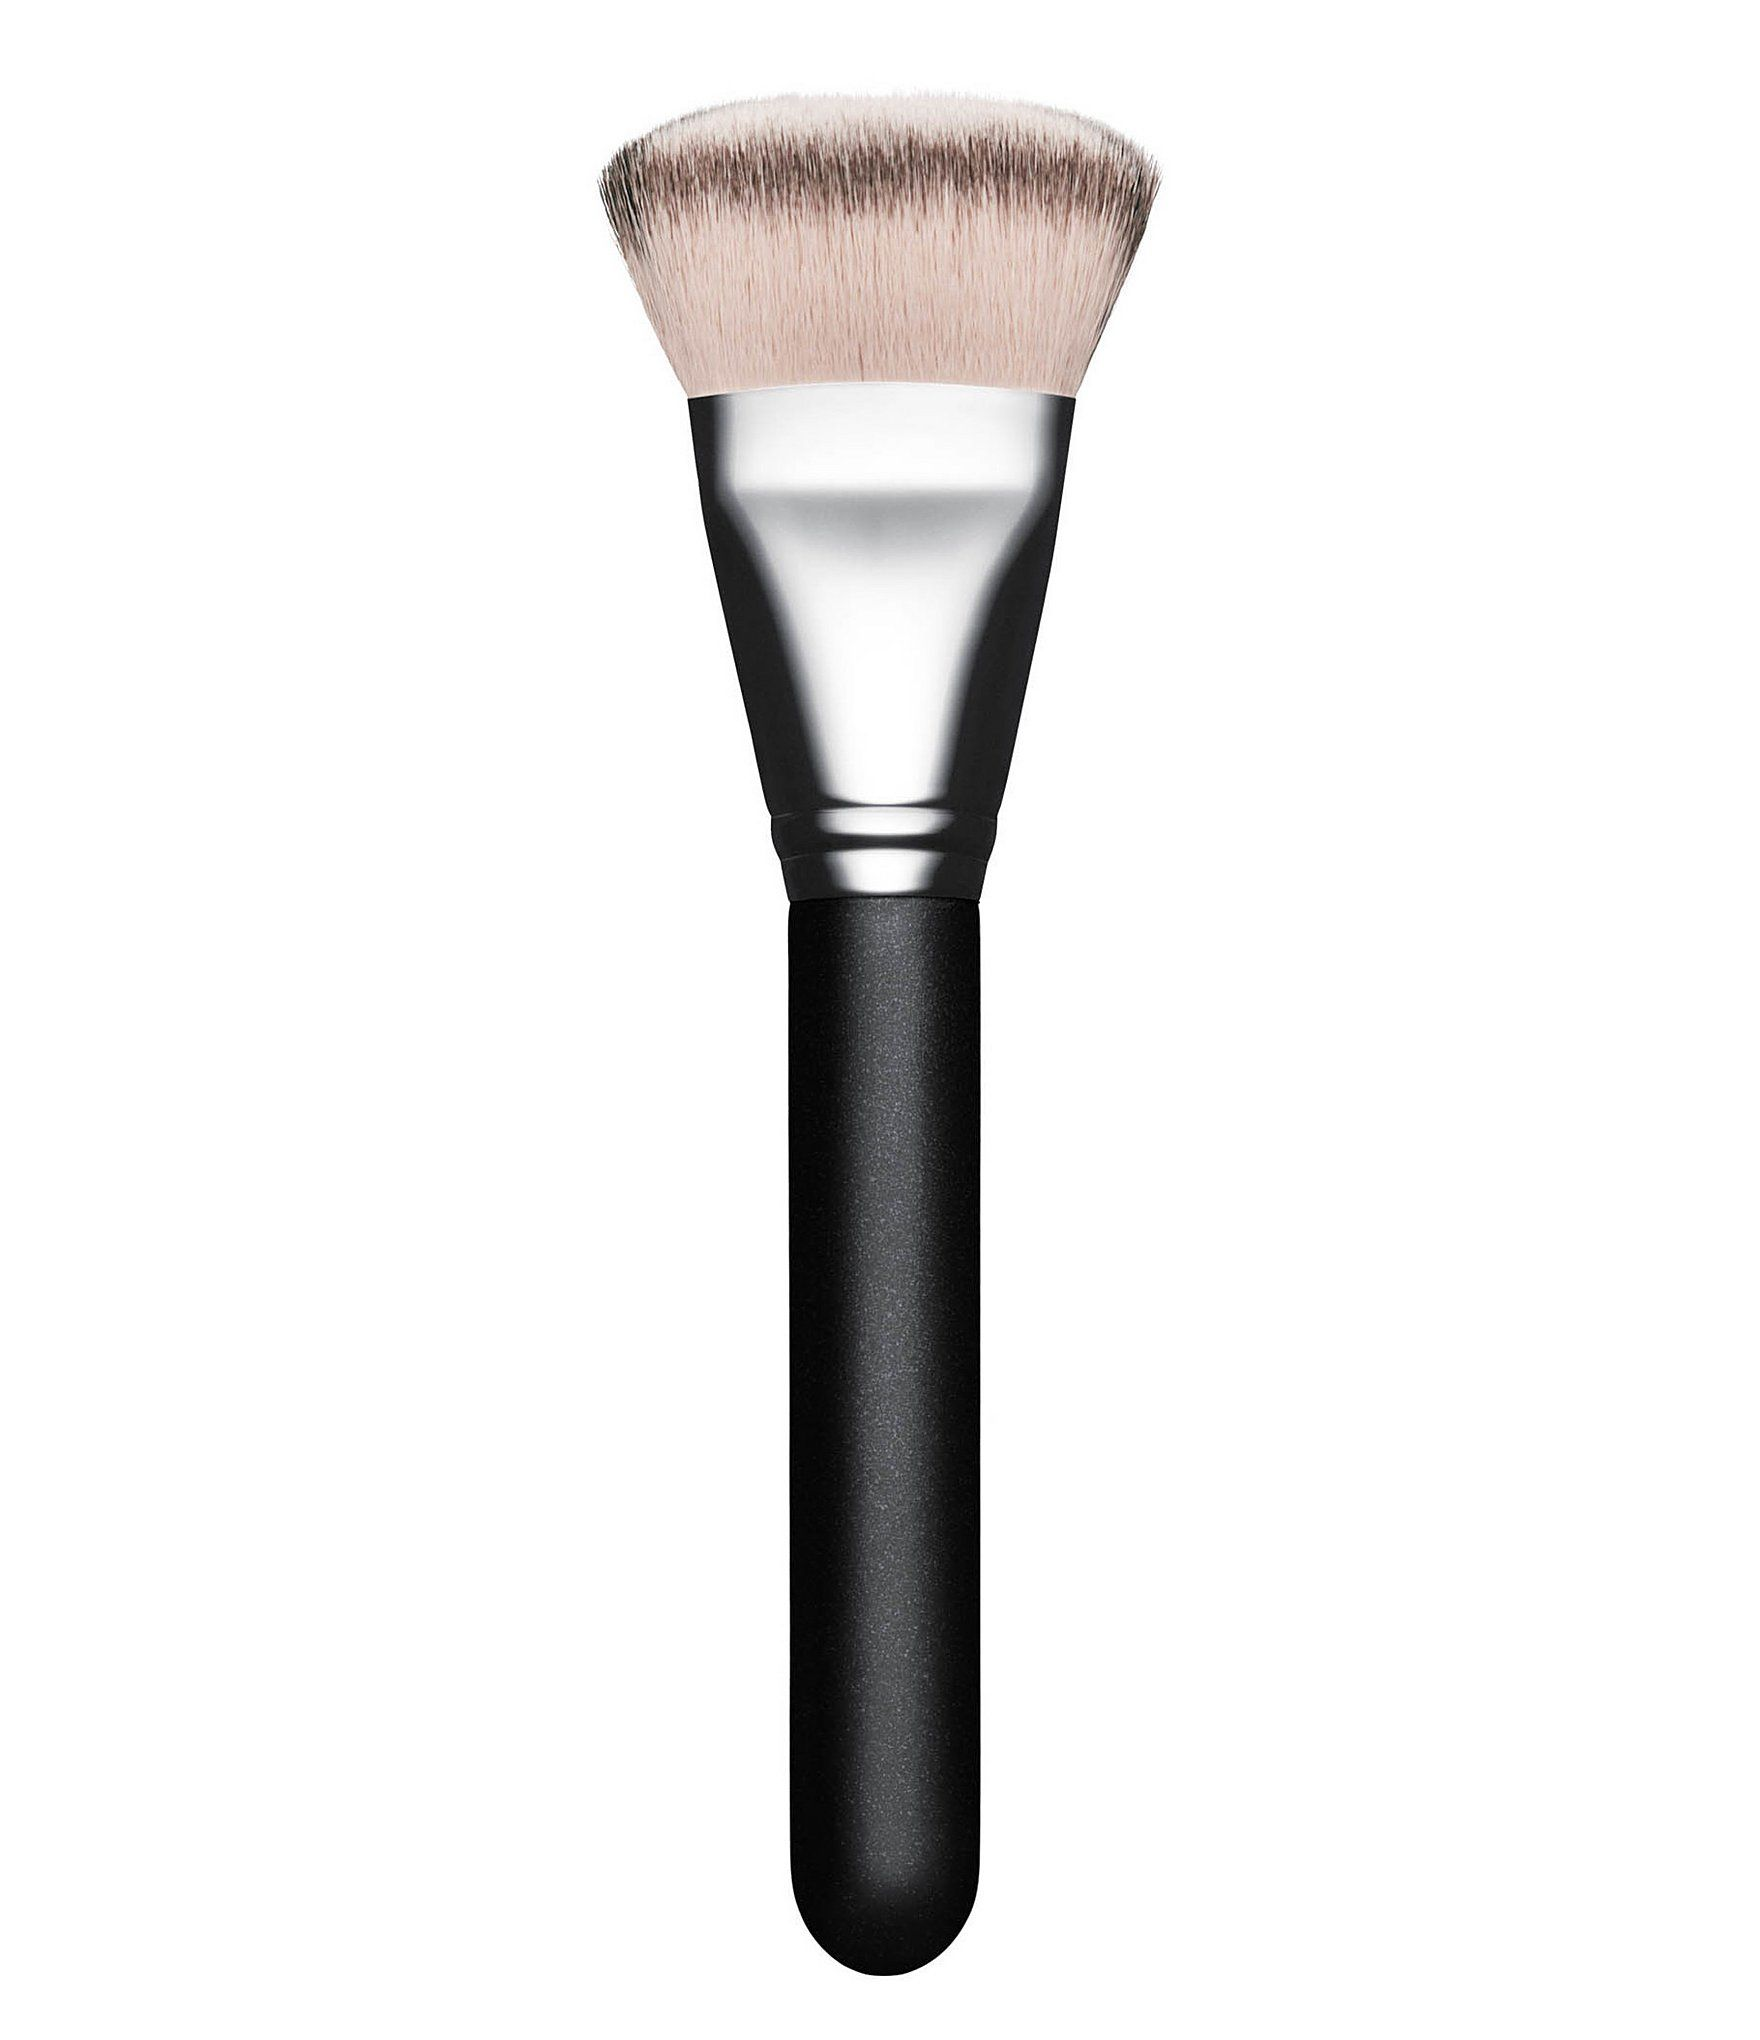 A face brush with a split of two types of synthetic fibres for more colour deposit and coverage. This densely packed brush has semi-short fibres with a rounded but flat top, chiseled at every angle, for maximum product pick-up and a more precise application. MAC professional brushes are hand-sculpted and assembled using the finest quality materials. MAC's 100% synthetic brushes incorporate the latest innovations in fibre technology for super